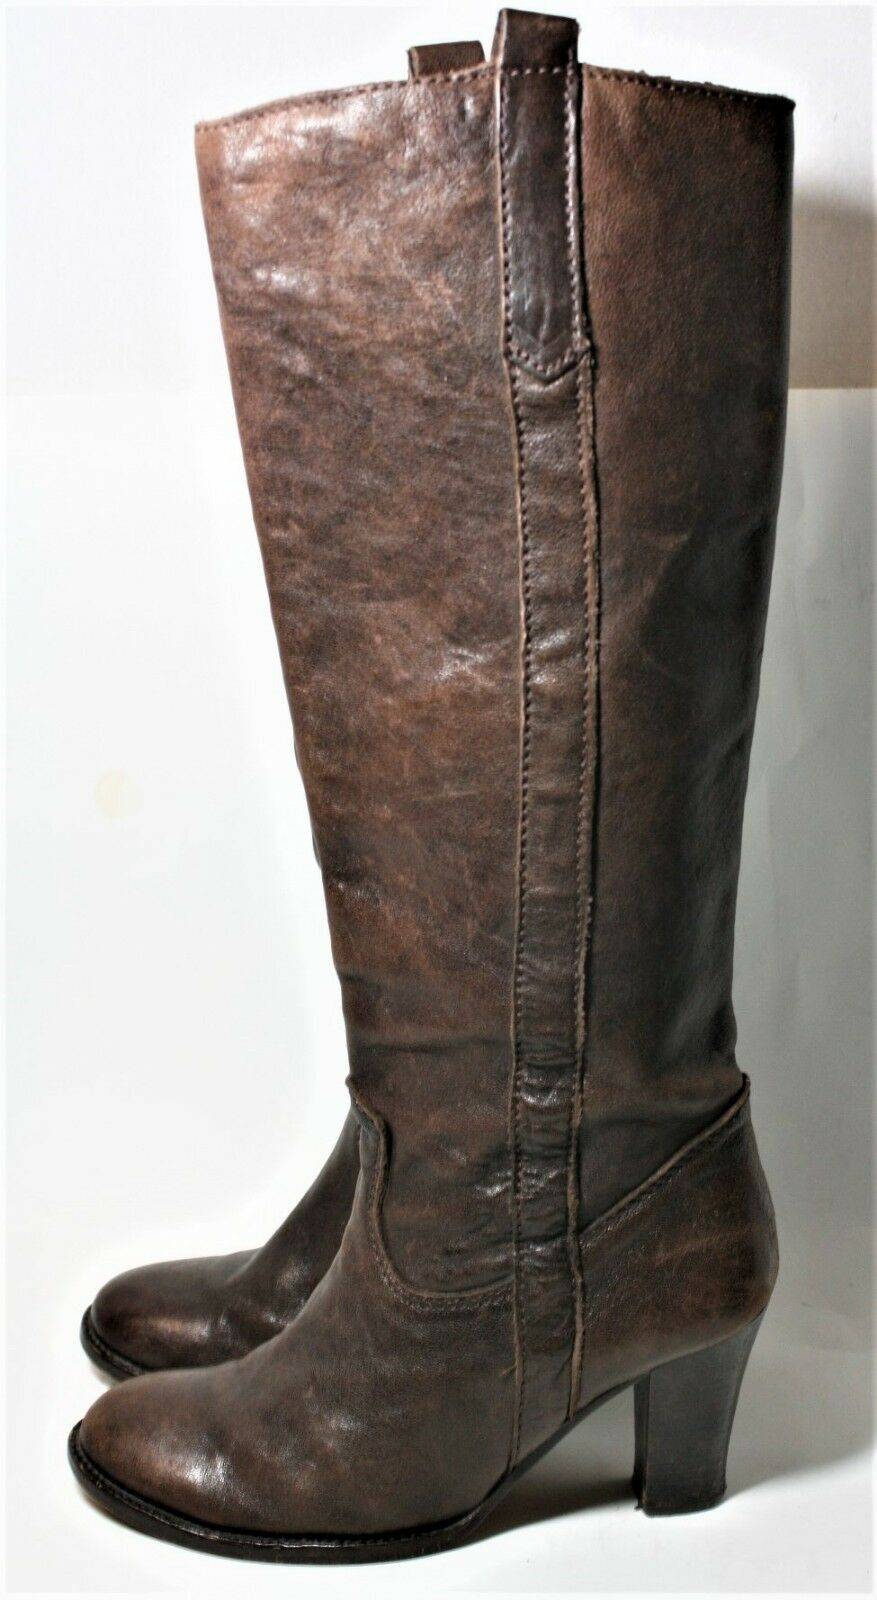 GERARD DAREL schuhe braun LEATHER PULL ON Stiefel Stiefel Stiefel 70S STYLE KNEE HIGH BOHO 37 07e83d